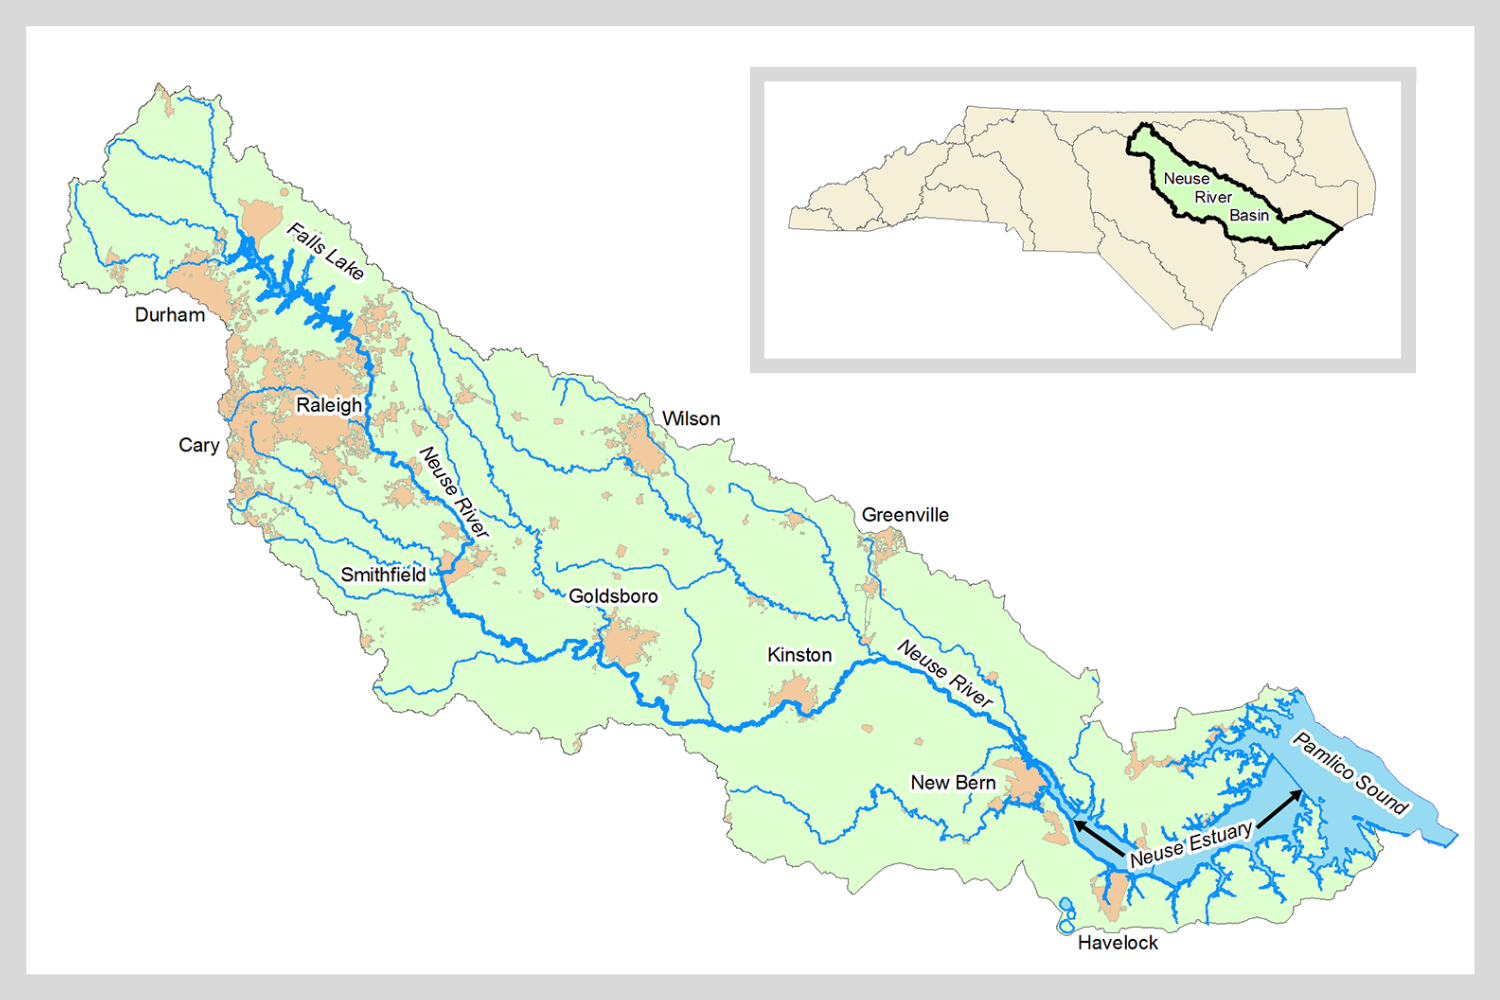 Map of the Neuse River basin